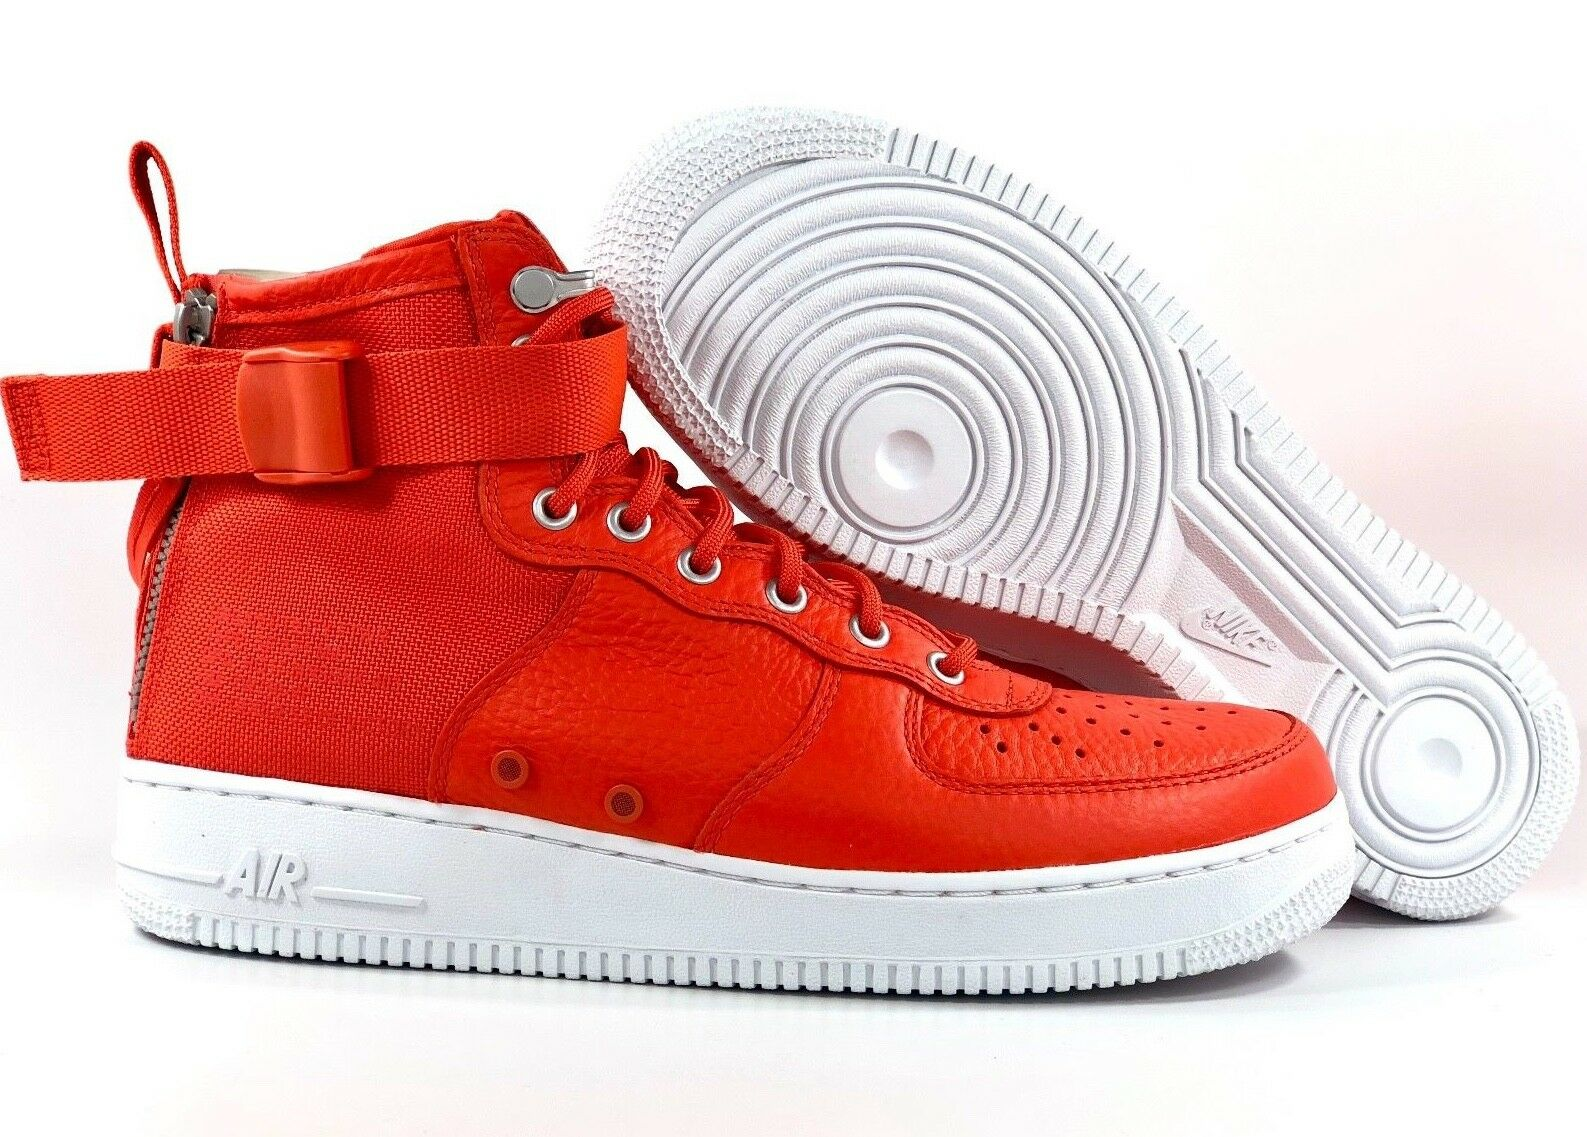 92e483e415e8f Nike SF AF1 Mid Special Field Air Force 1 1 1 orange White 917753-800 ...